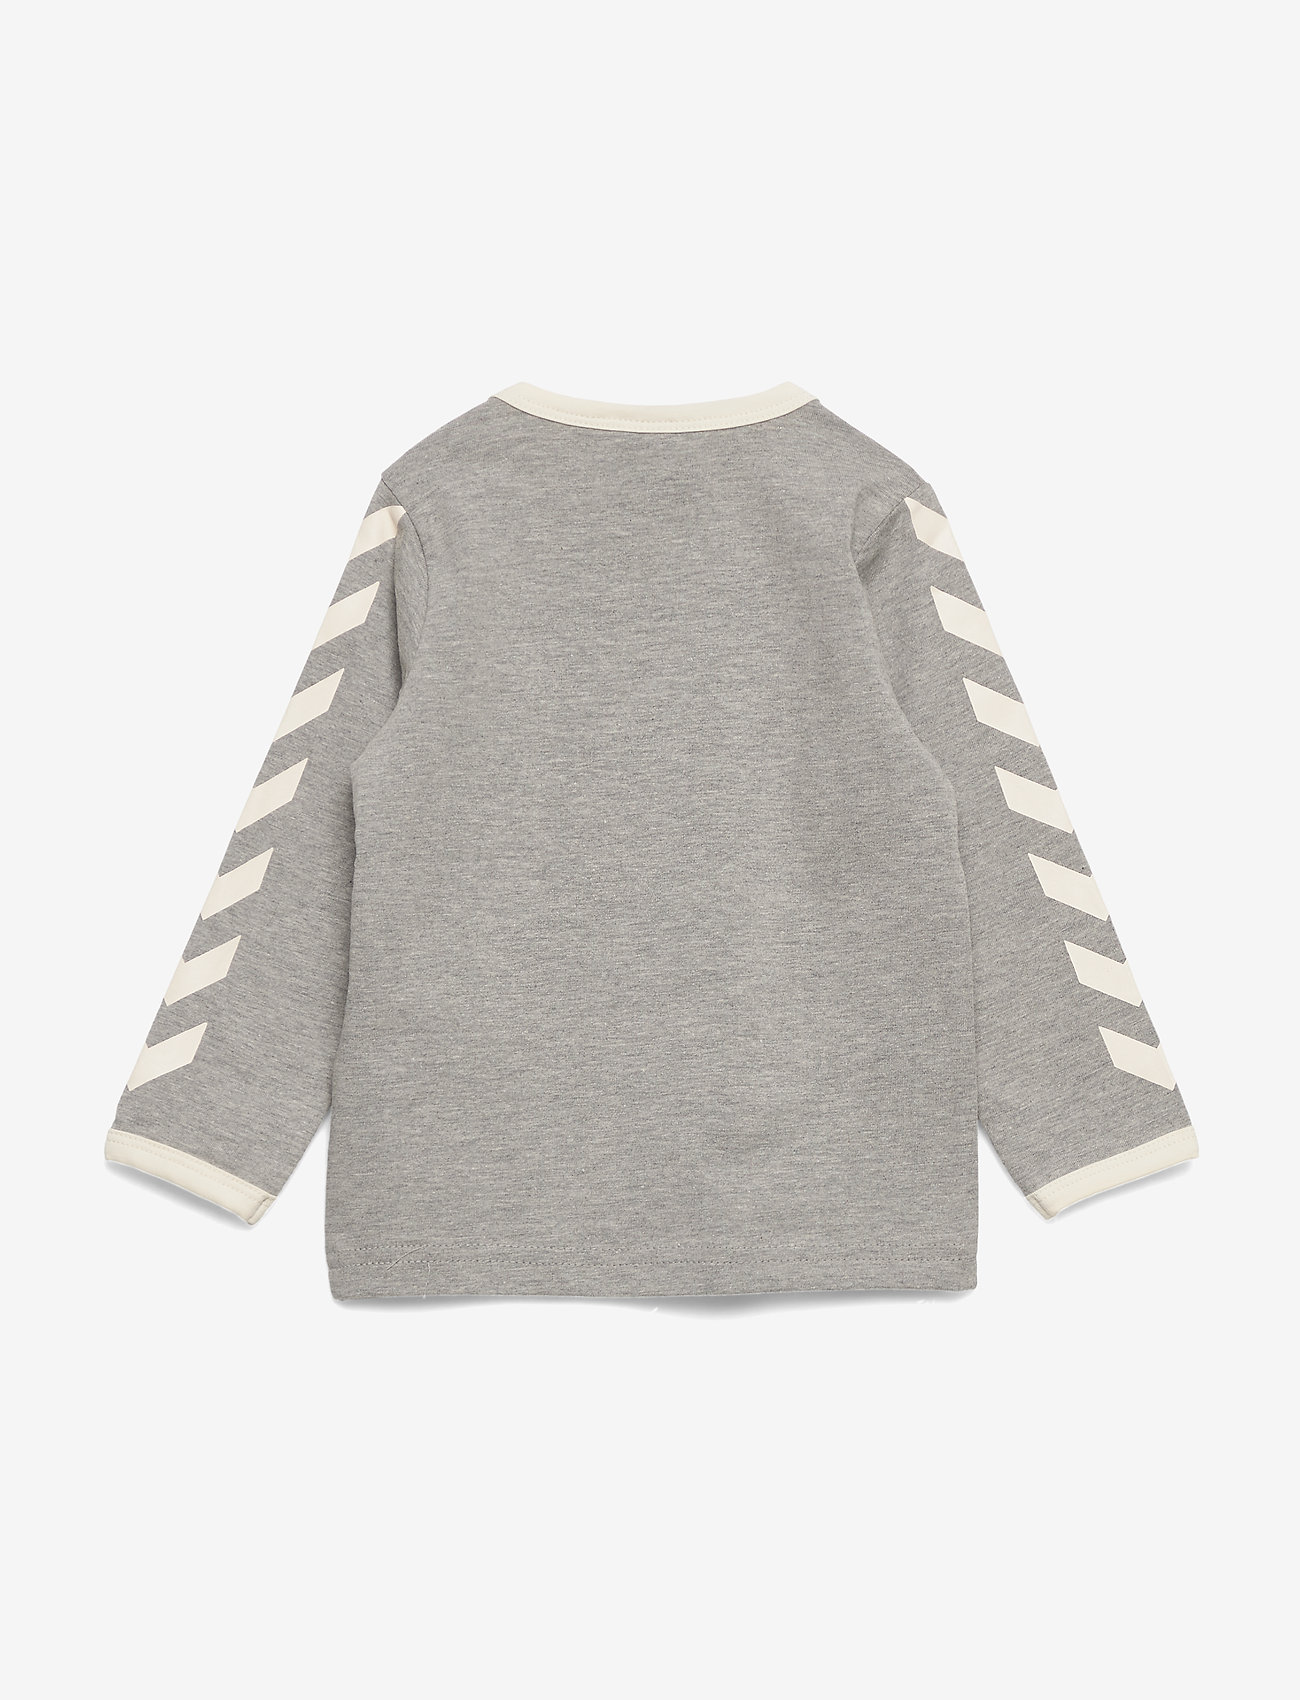 Hummel - hmlFLIPPER T-SHIRT L/S - long-sleeved t-shirts - grey melange - 1